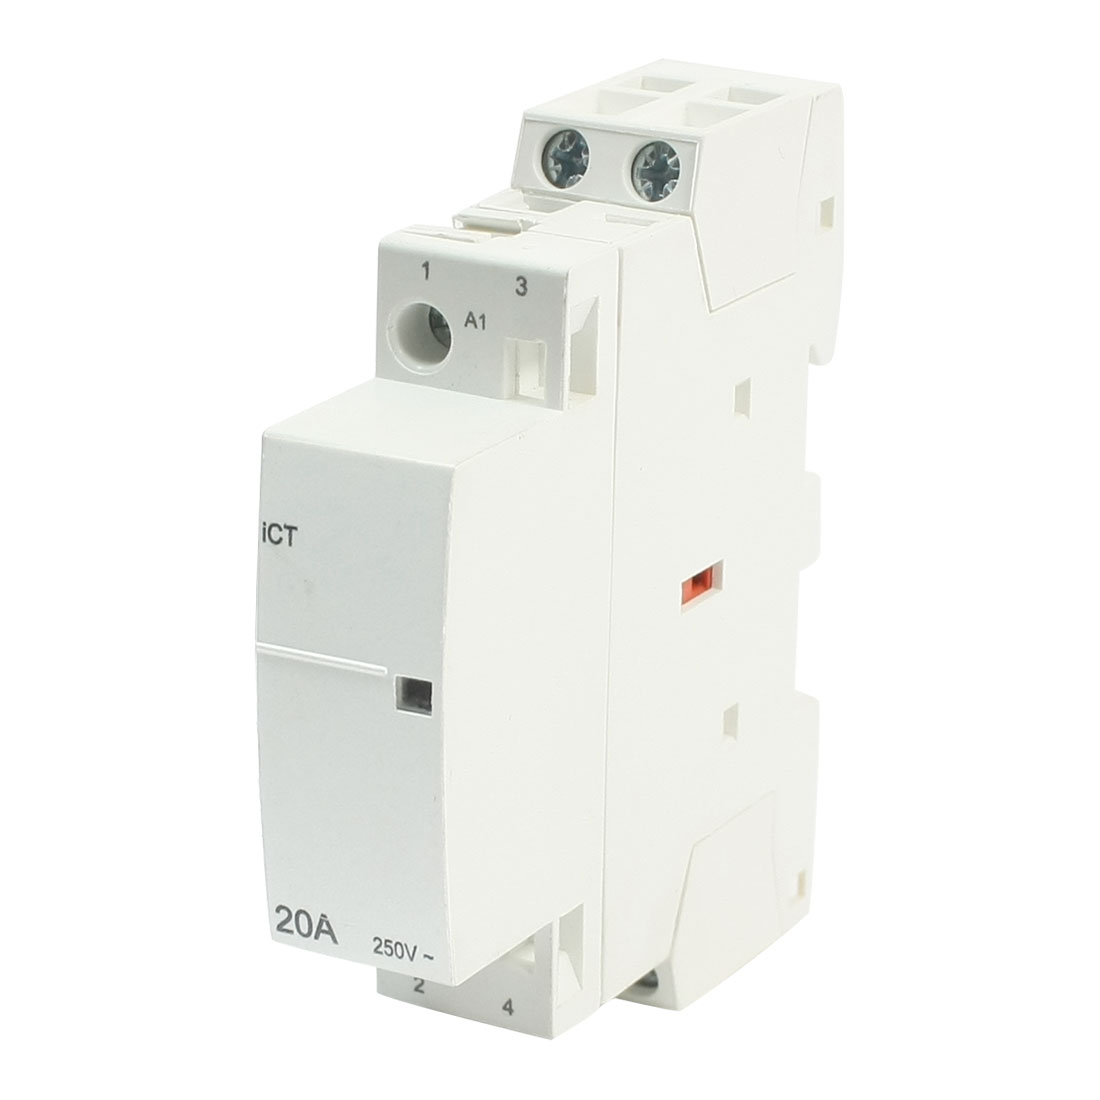 AC 230V Coil Voltage 35mm DIN Rail Mount 2-Pole Universal Purpose Household Contactor Family Modular 20Amp